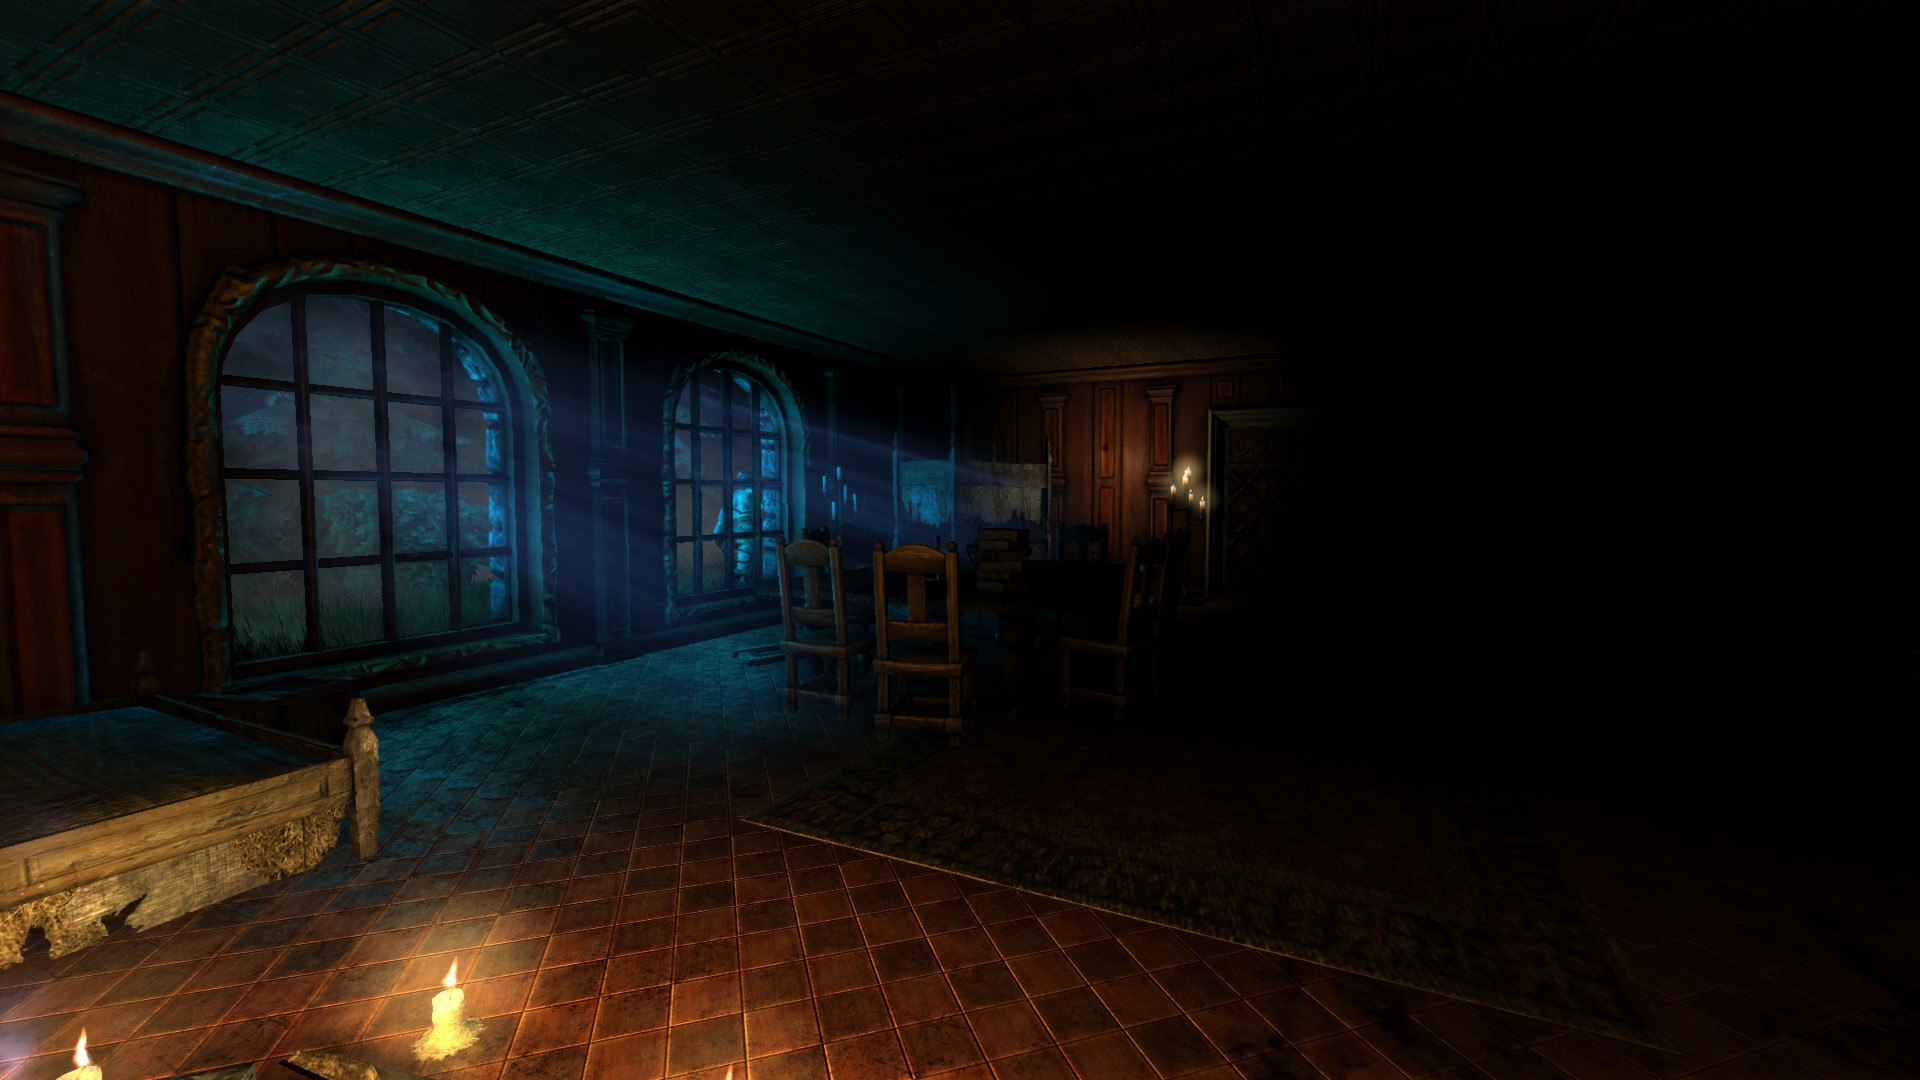 Servants Room image - Fekete Keres - Black Search mod for Amnesia ...